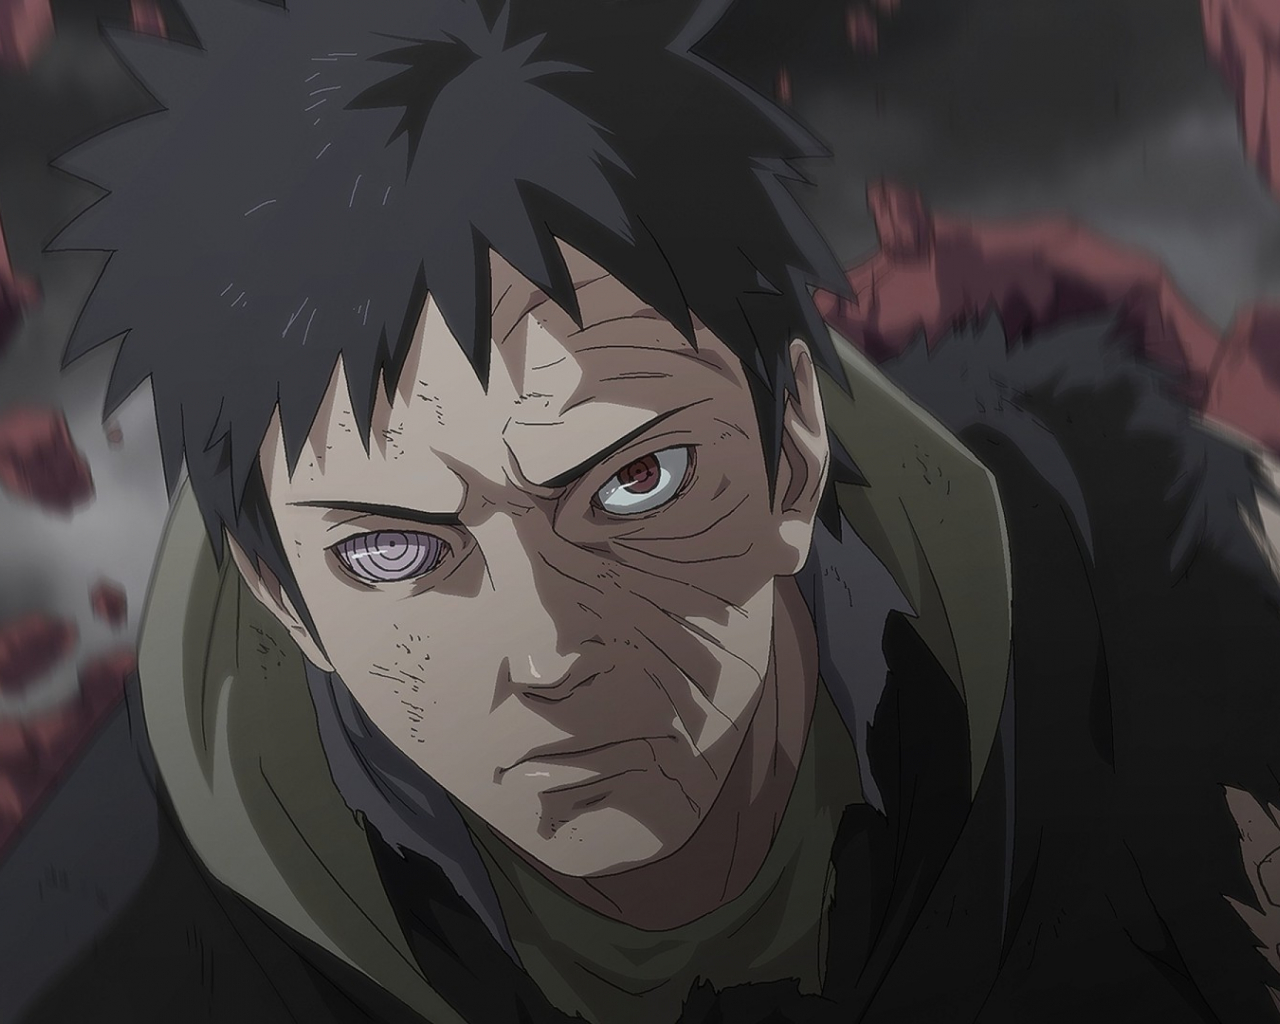 Free Download Obito Uchiha Obito Uchiha Wallpaper 36892451 1920x1080 For Your Desktop Mobile Tablet Explore 76 Uchiha Obito Wallpaper Obito Vs Kakashi Wallpaper Madara And Obito Wallpaper Naruto Obito Wallpaper